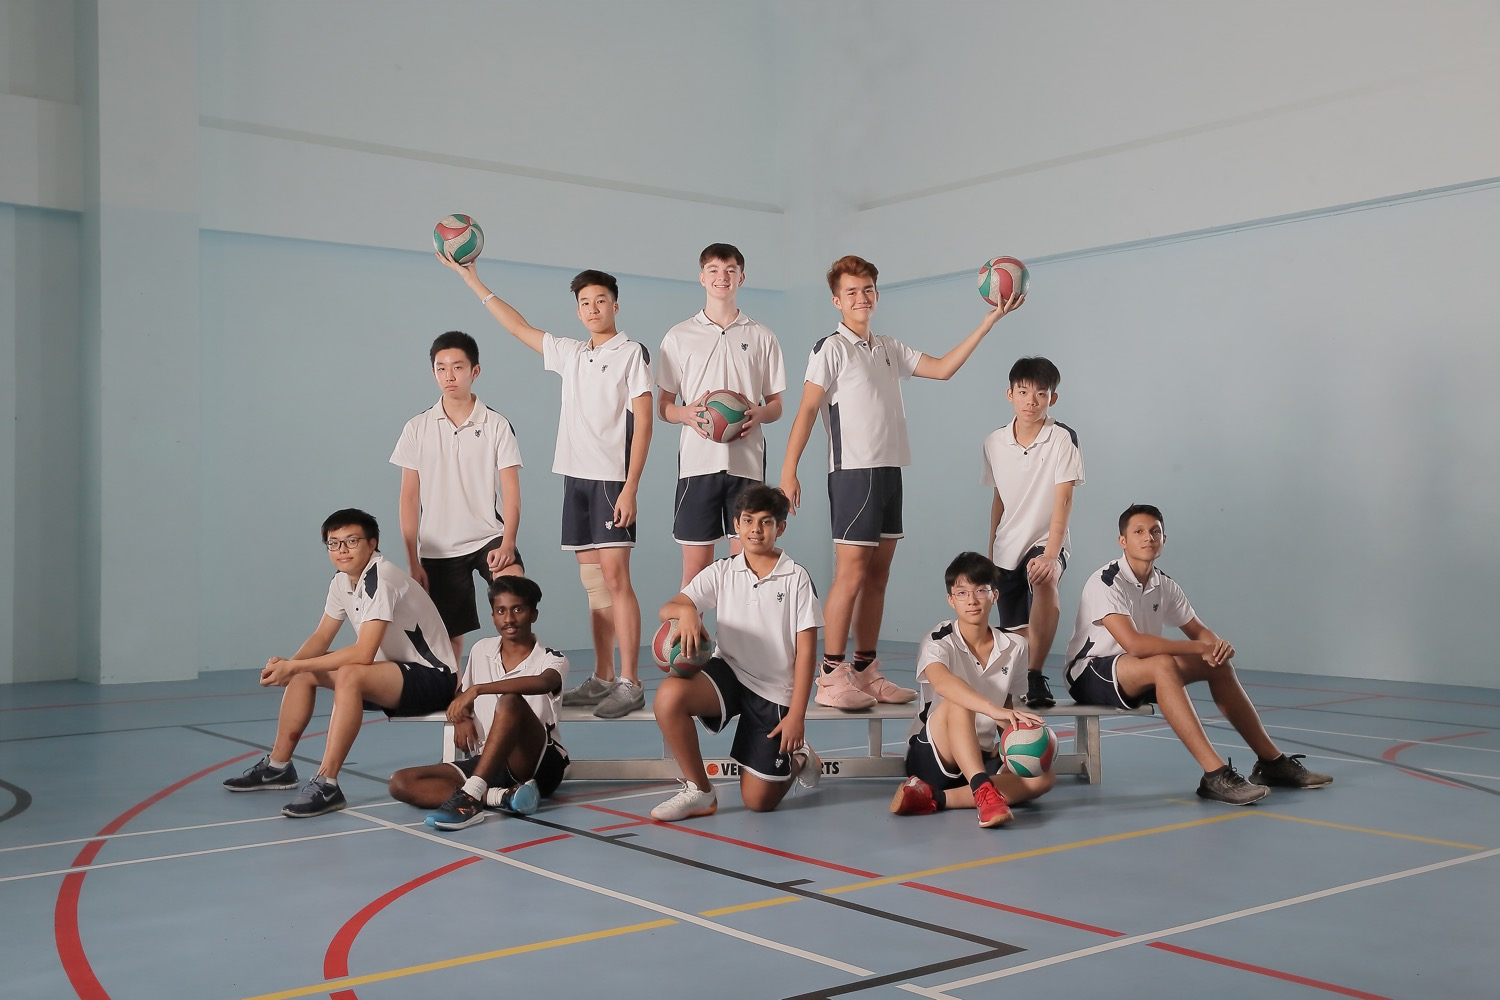 BSKL Sports Group Pose (Volleyball Team)